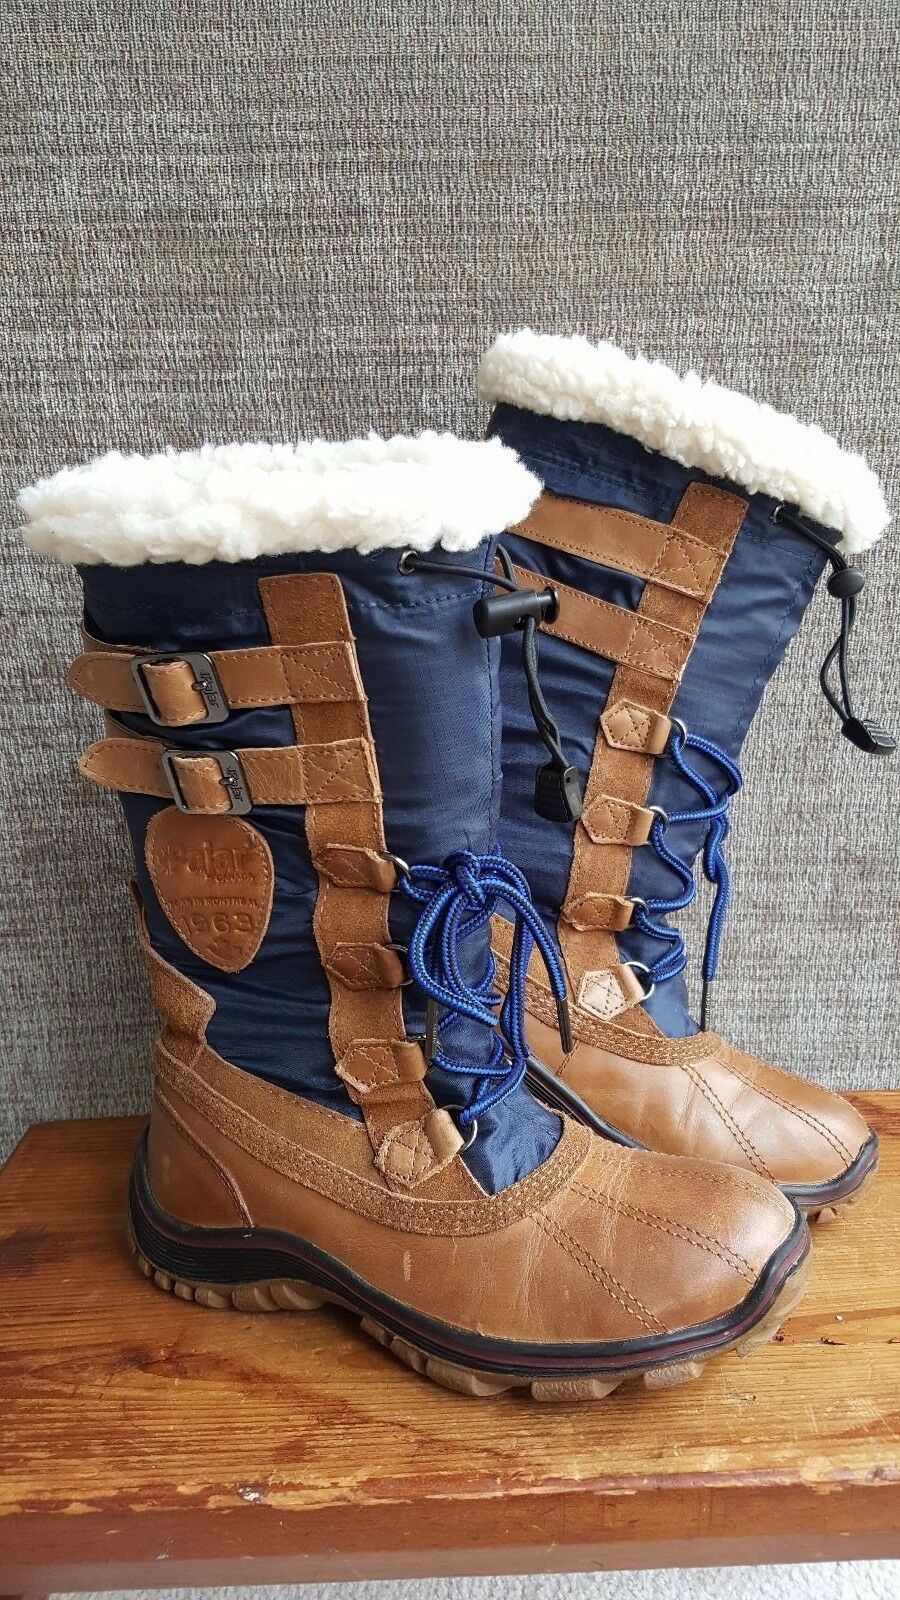 Pre-Owned Women's PAJAR ADRIANA Winter Boot, Sz 6 MED Brown & Navy, Retail